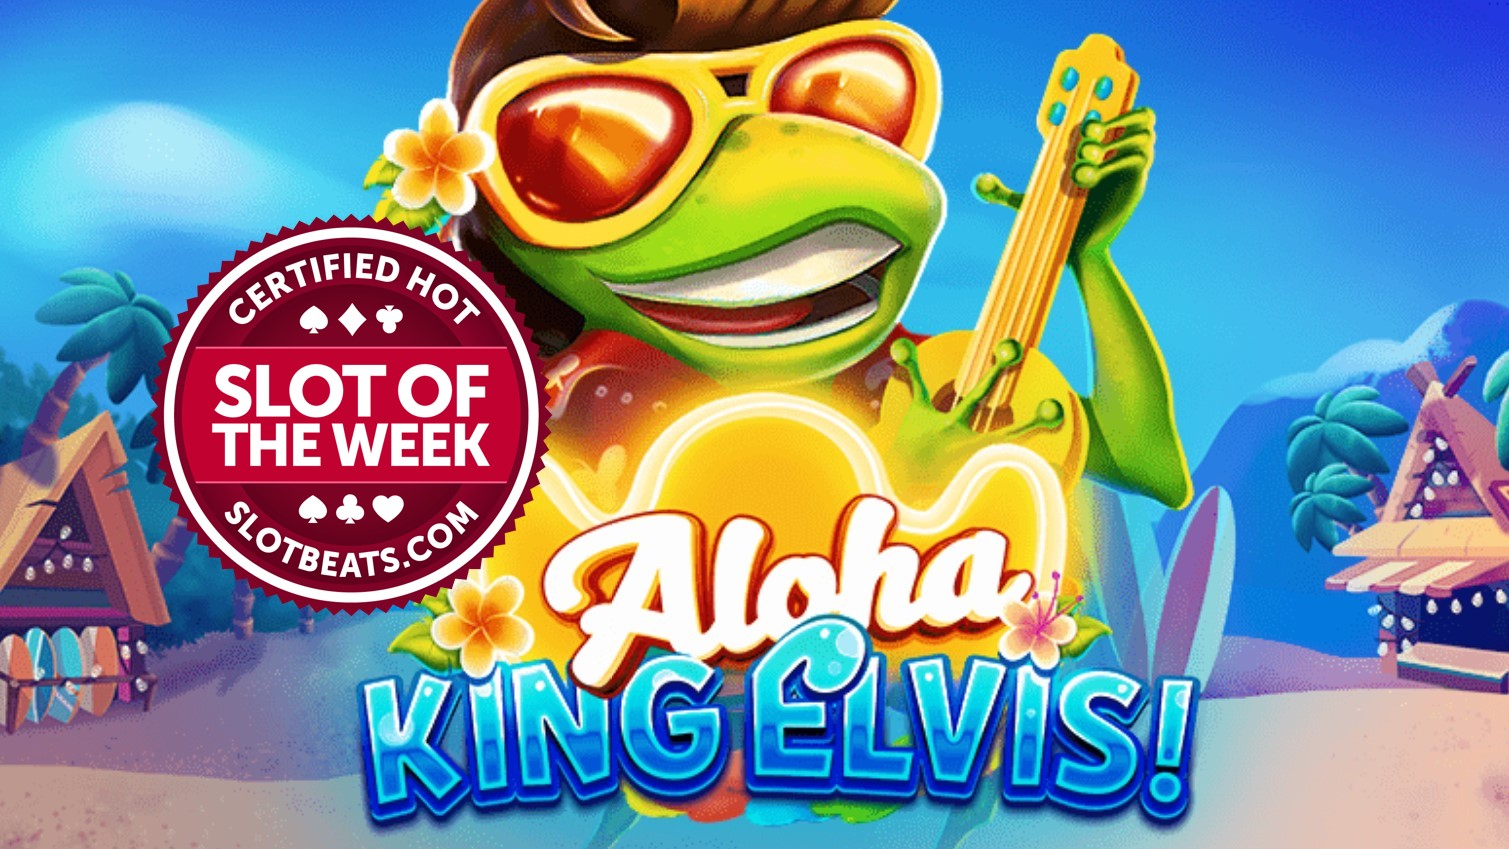 BGaming has taken our Slot of the Week award to Hawaii claiming this week's flower crown with its winning title, Aloha King Elvis.